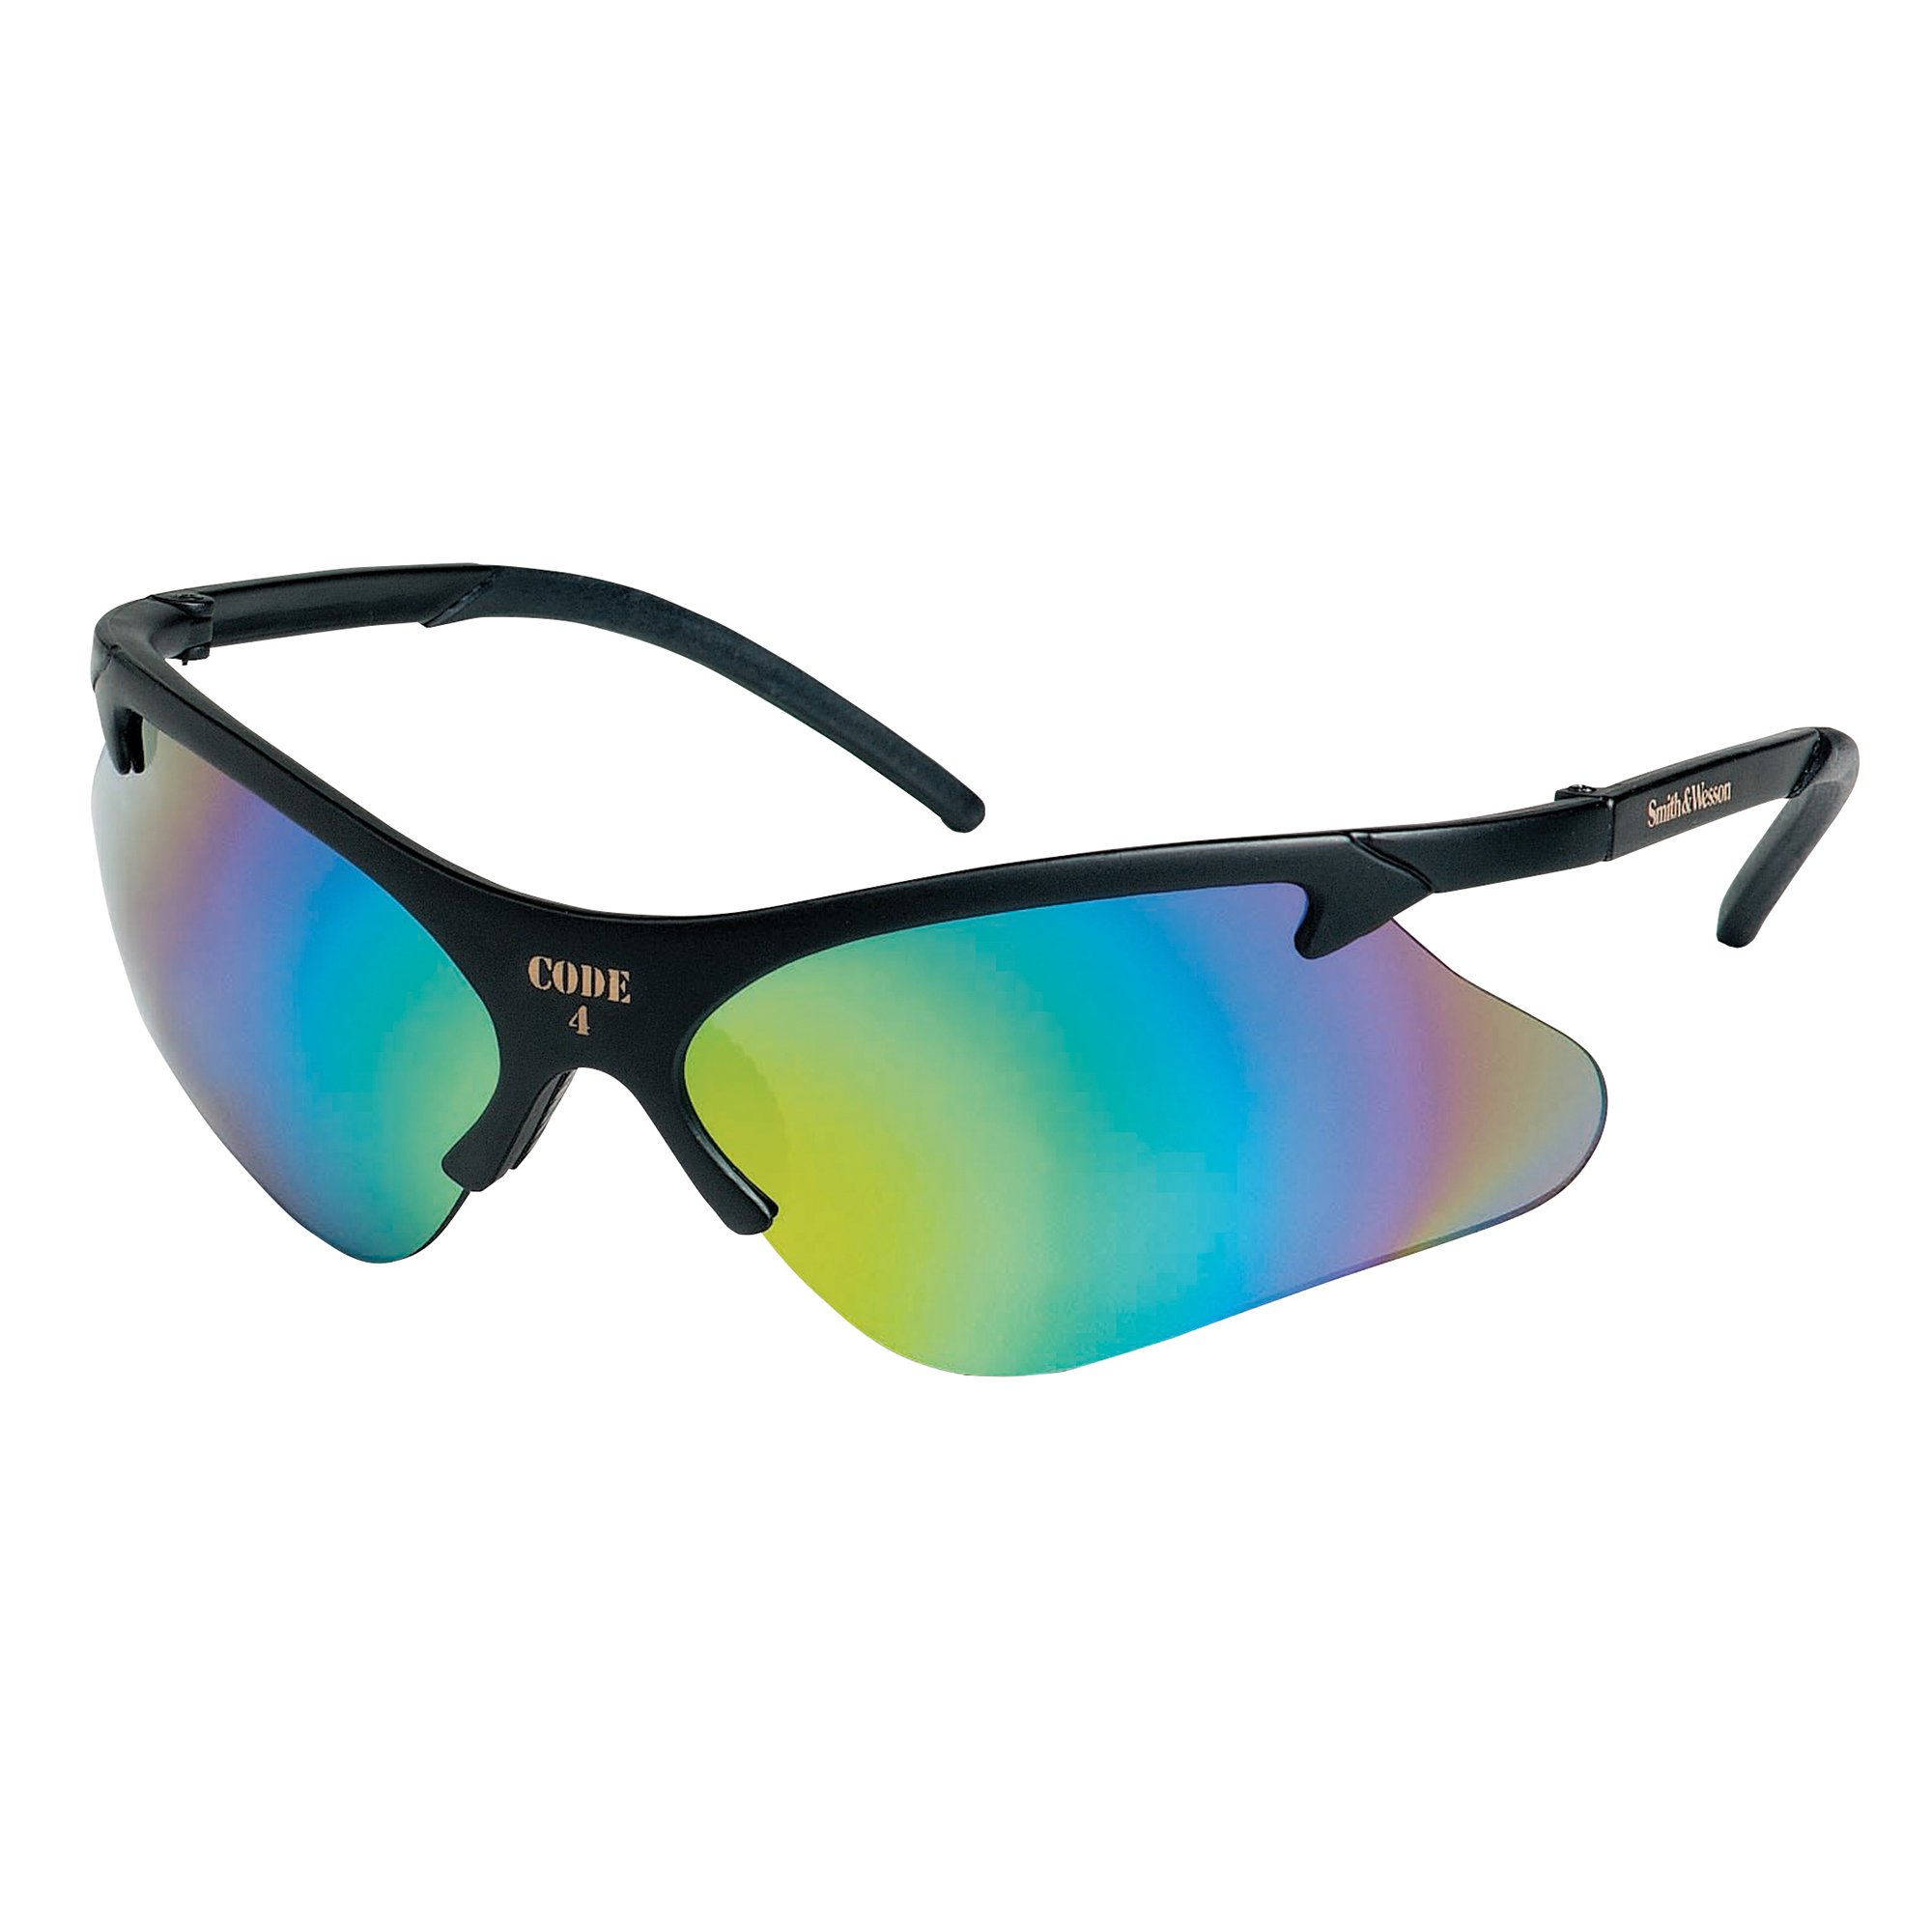 Smith & Wesson Code 4 Safety Glasses (19834), Black Frame, Mirror Lens (Safety Sunglasses), 12 Pairs / Case